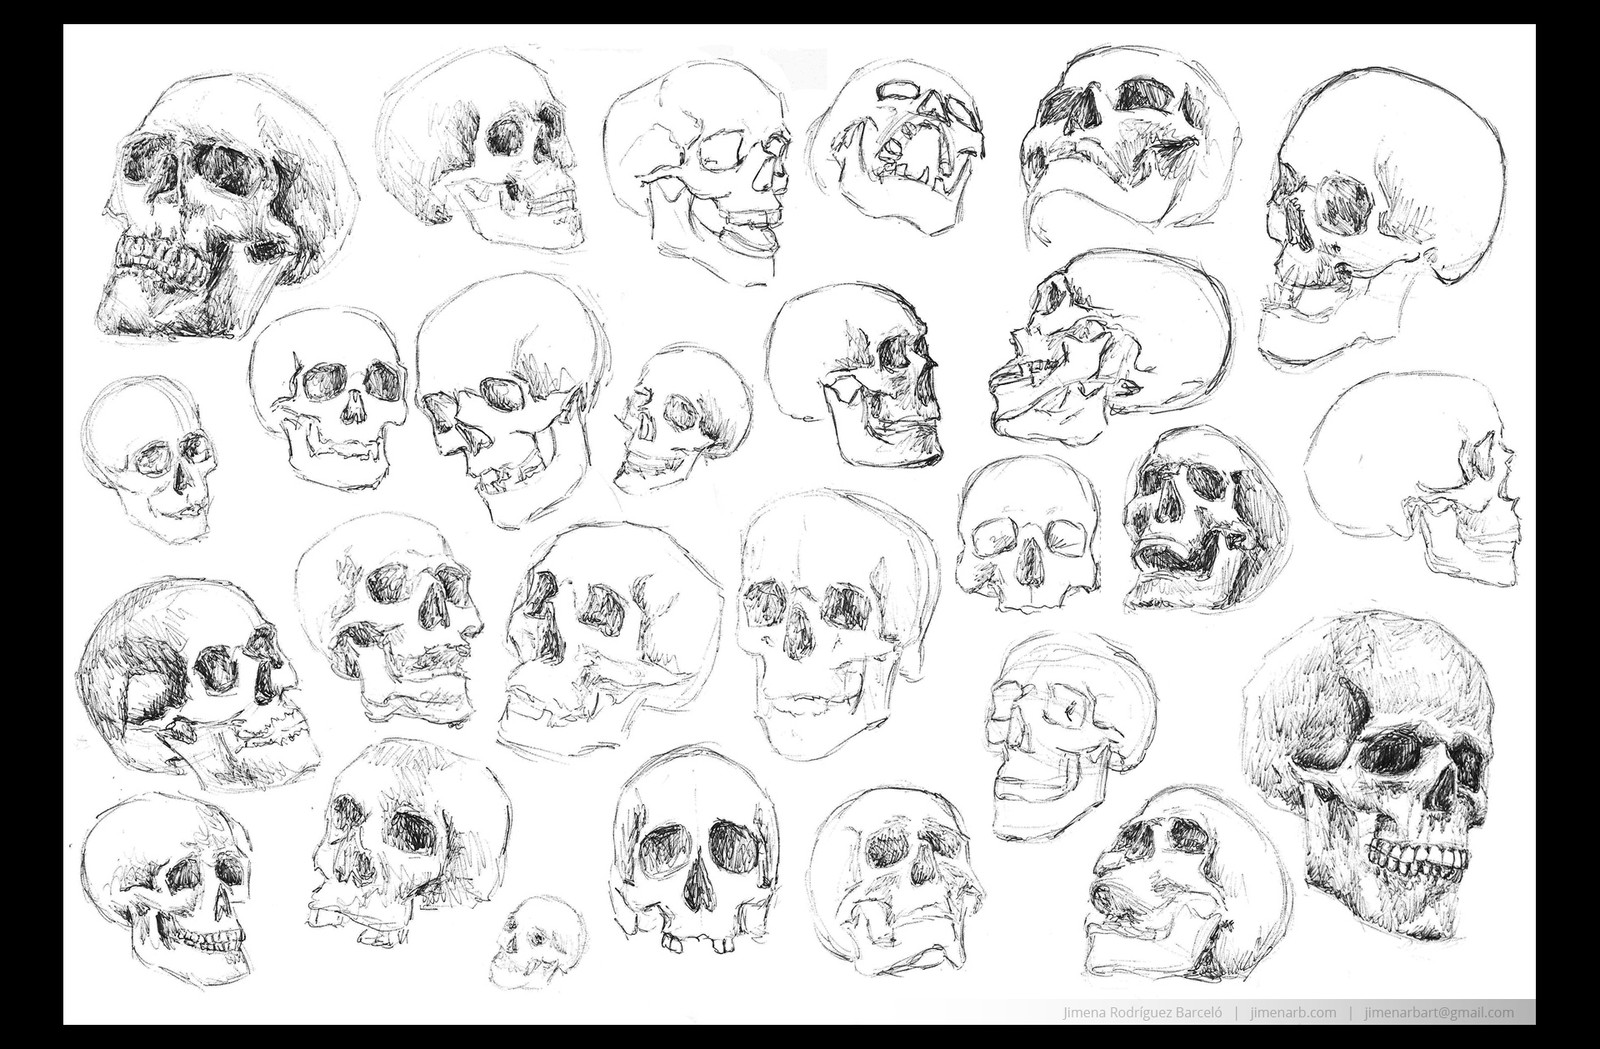 Sketches to practice anatomy and proportions of the skull with just a pen, paper, and references. Each skull takes approximately 2 to 10 minutes.